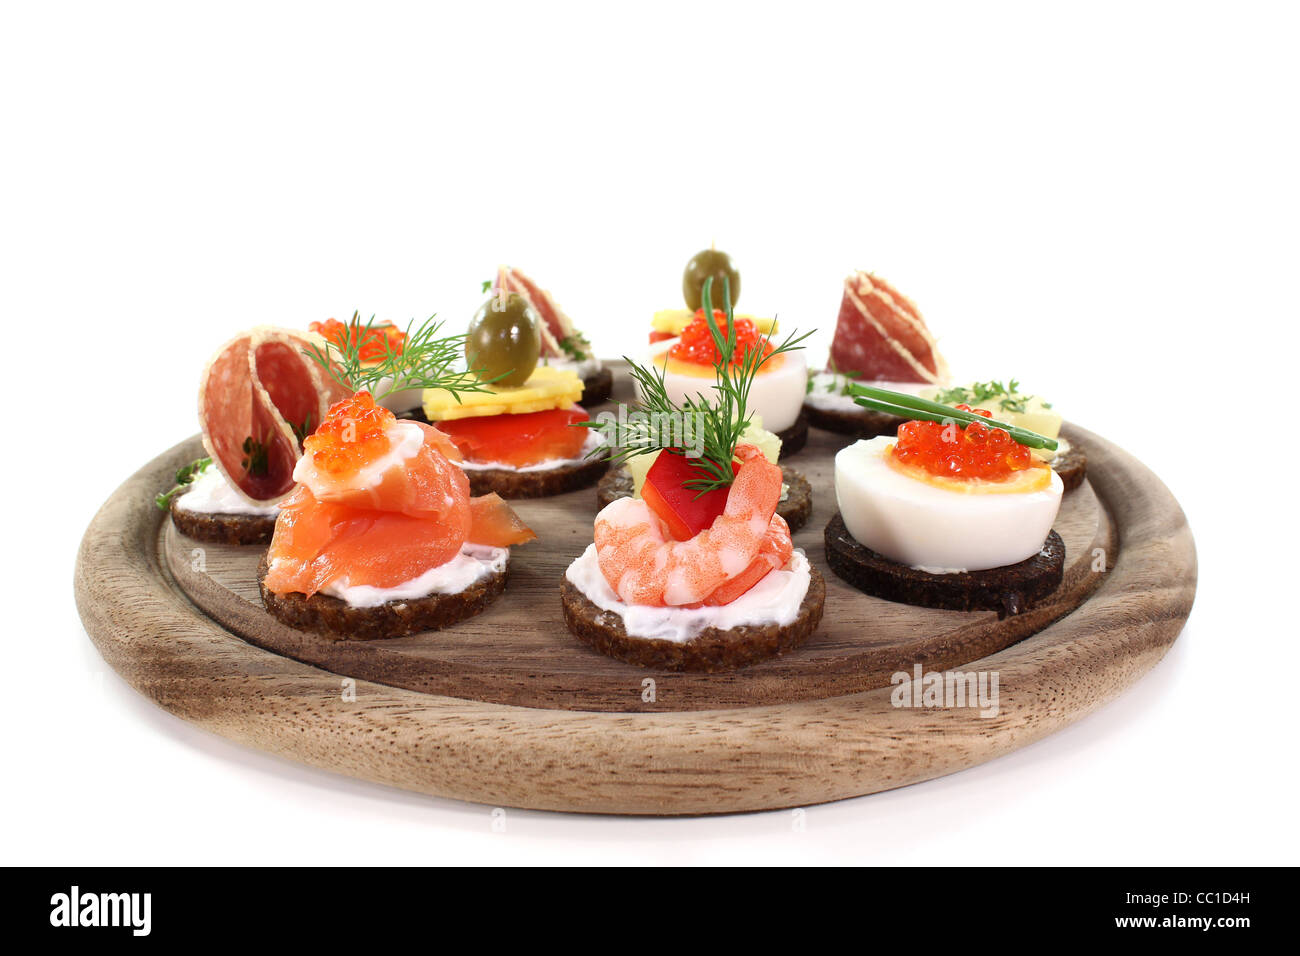 different canapes on a wooden board on a white background stock image